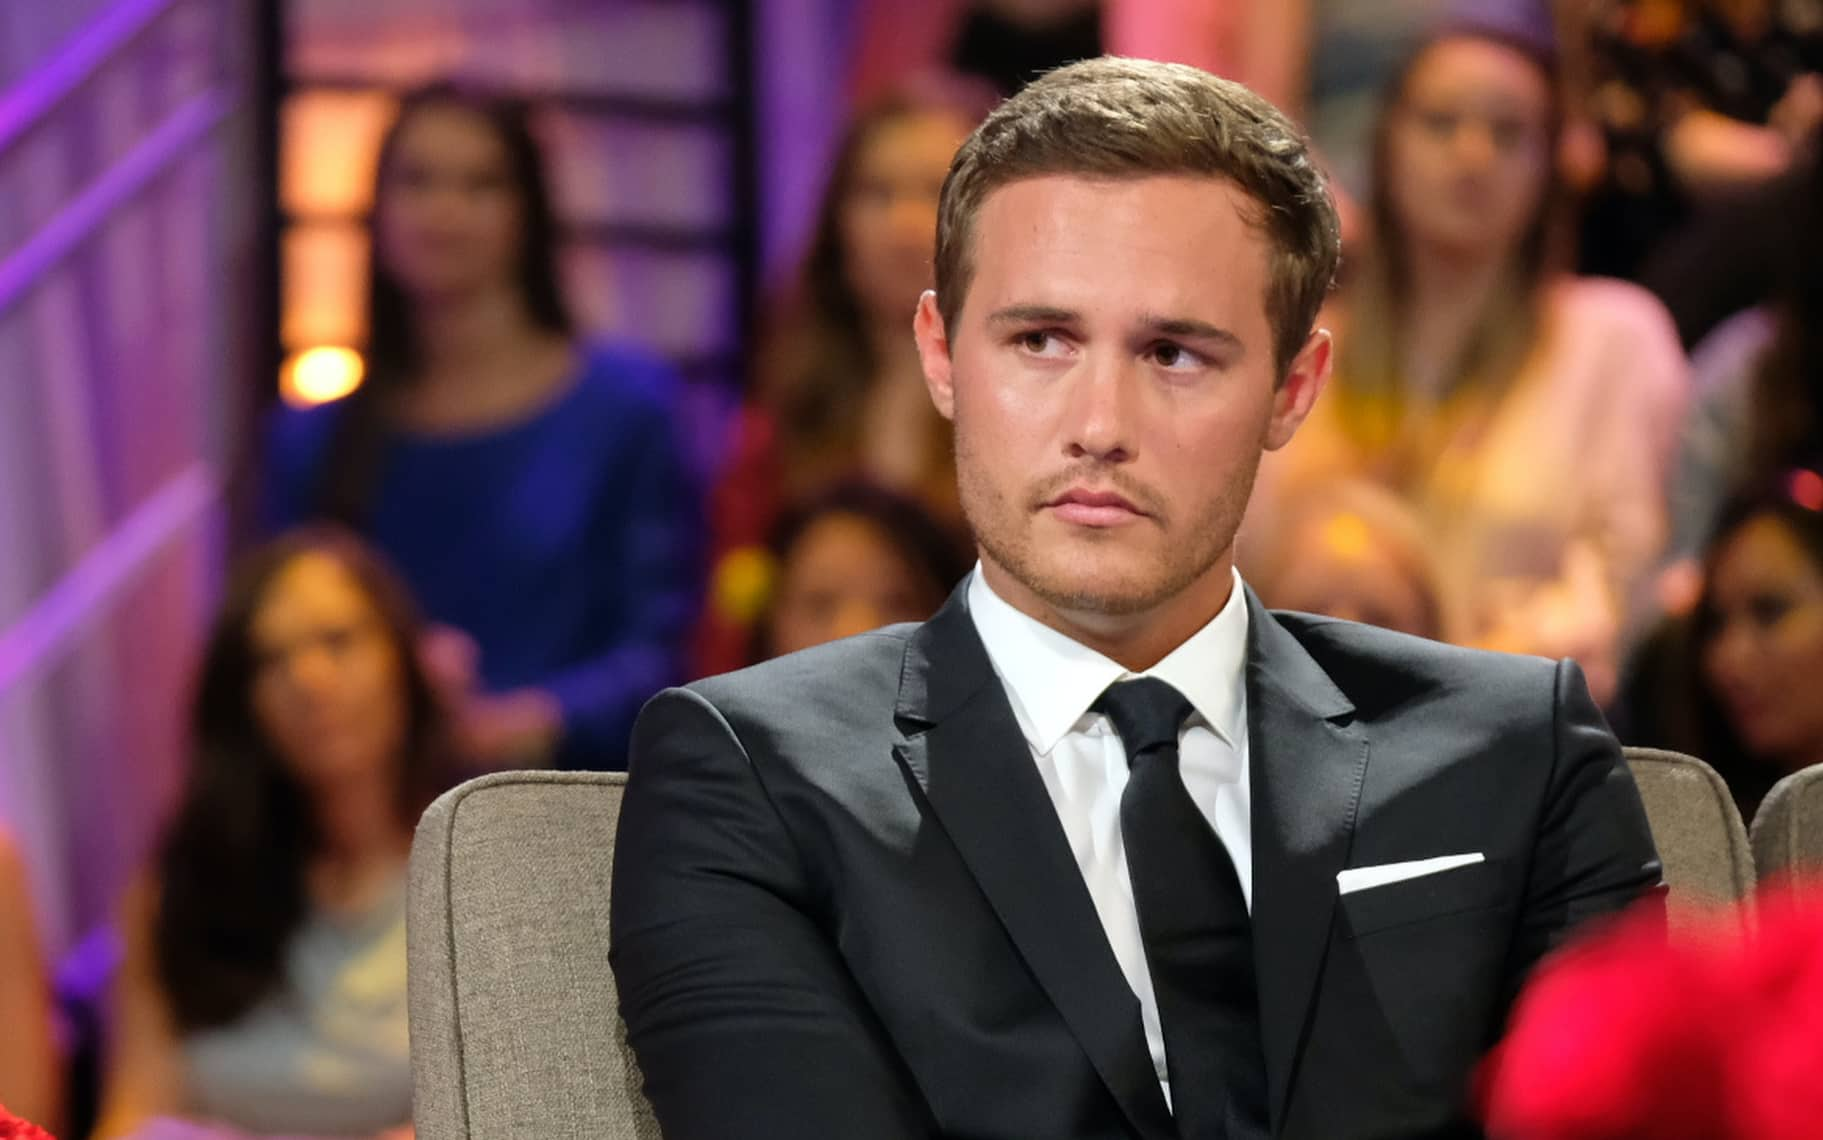 The Bachelor 23 star Peter Weber during The Bachelorette season finale